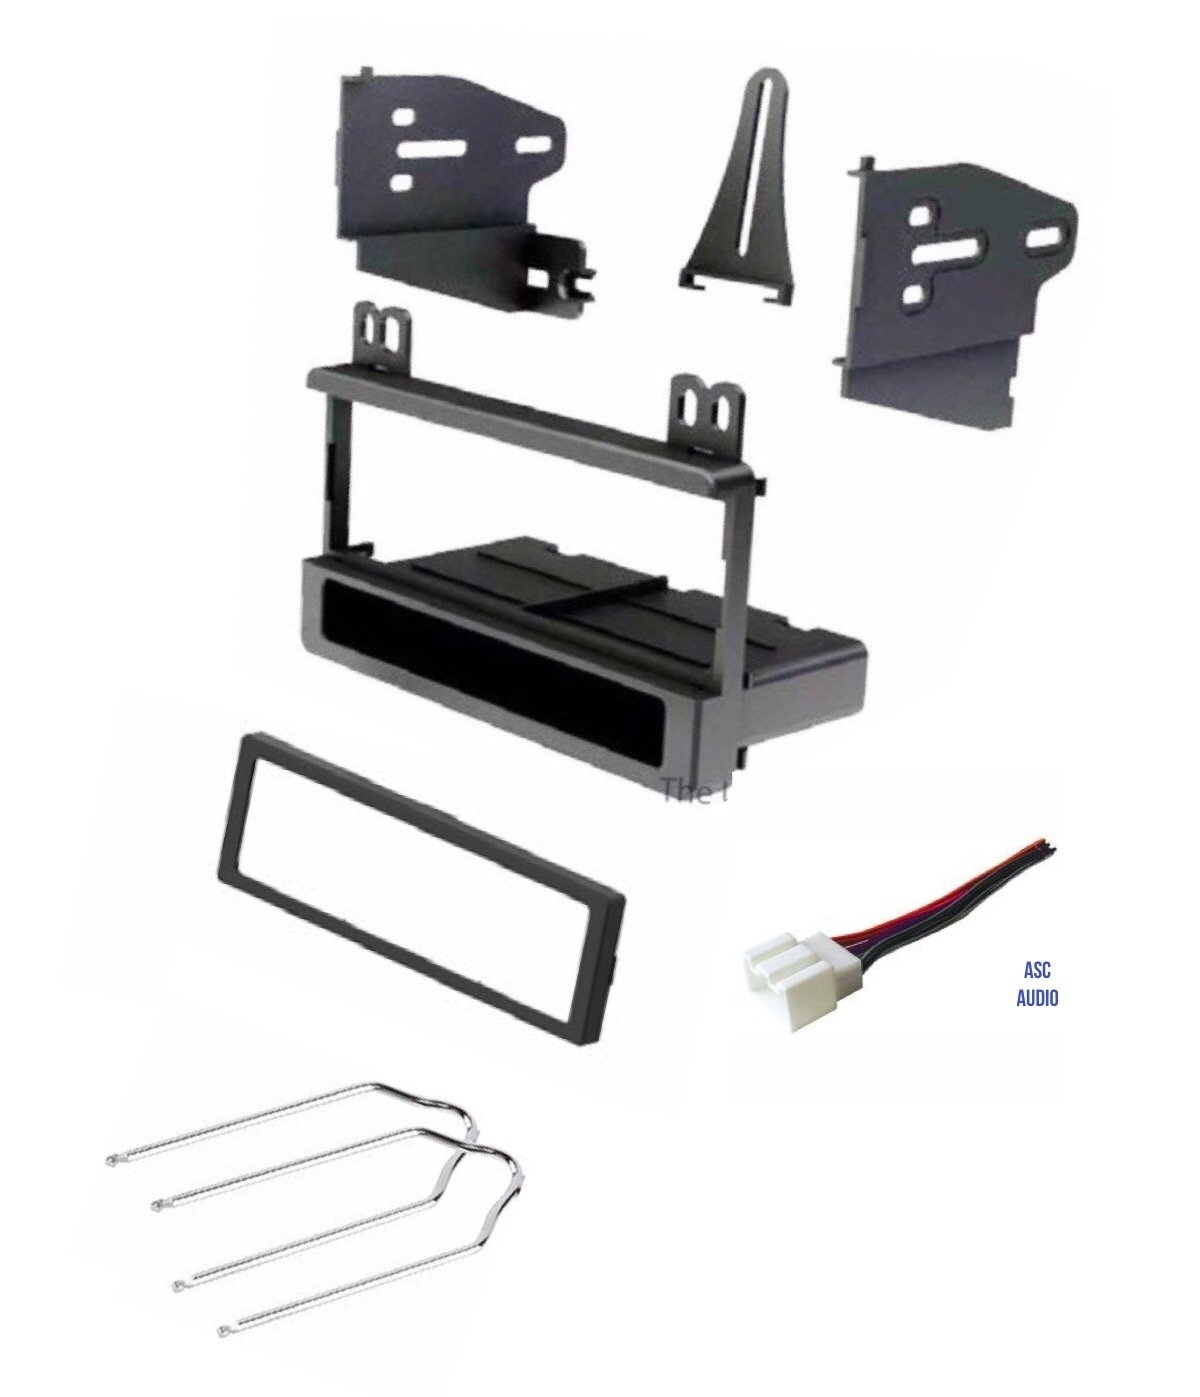 hight resolution of car stereo dash kit wire harness and radio tool for installing a new radio